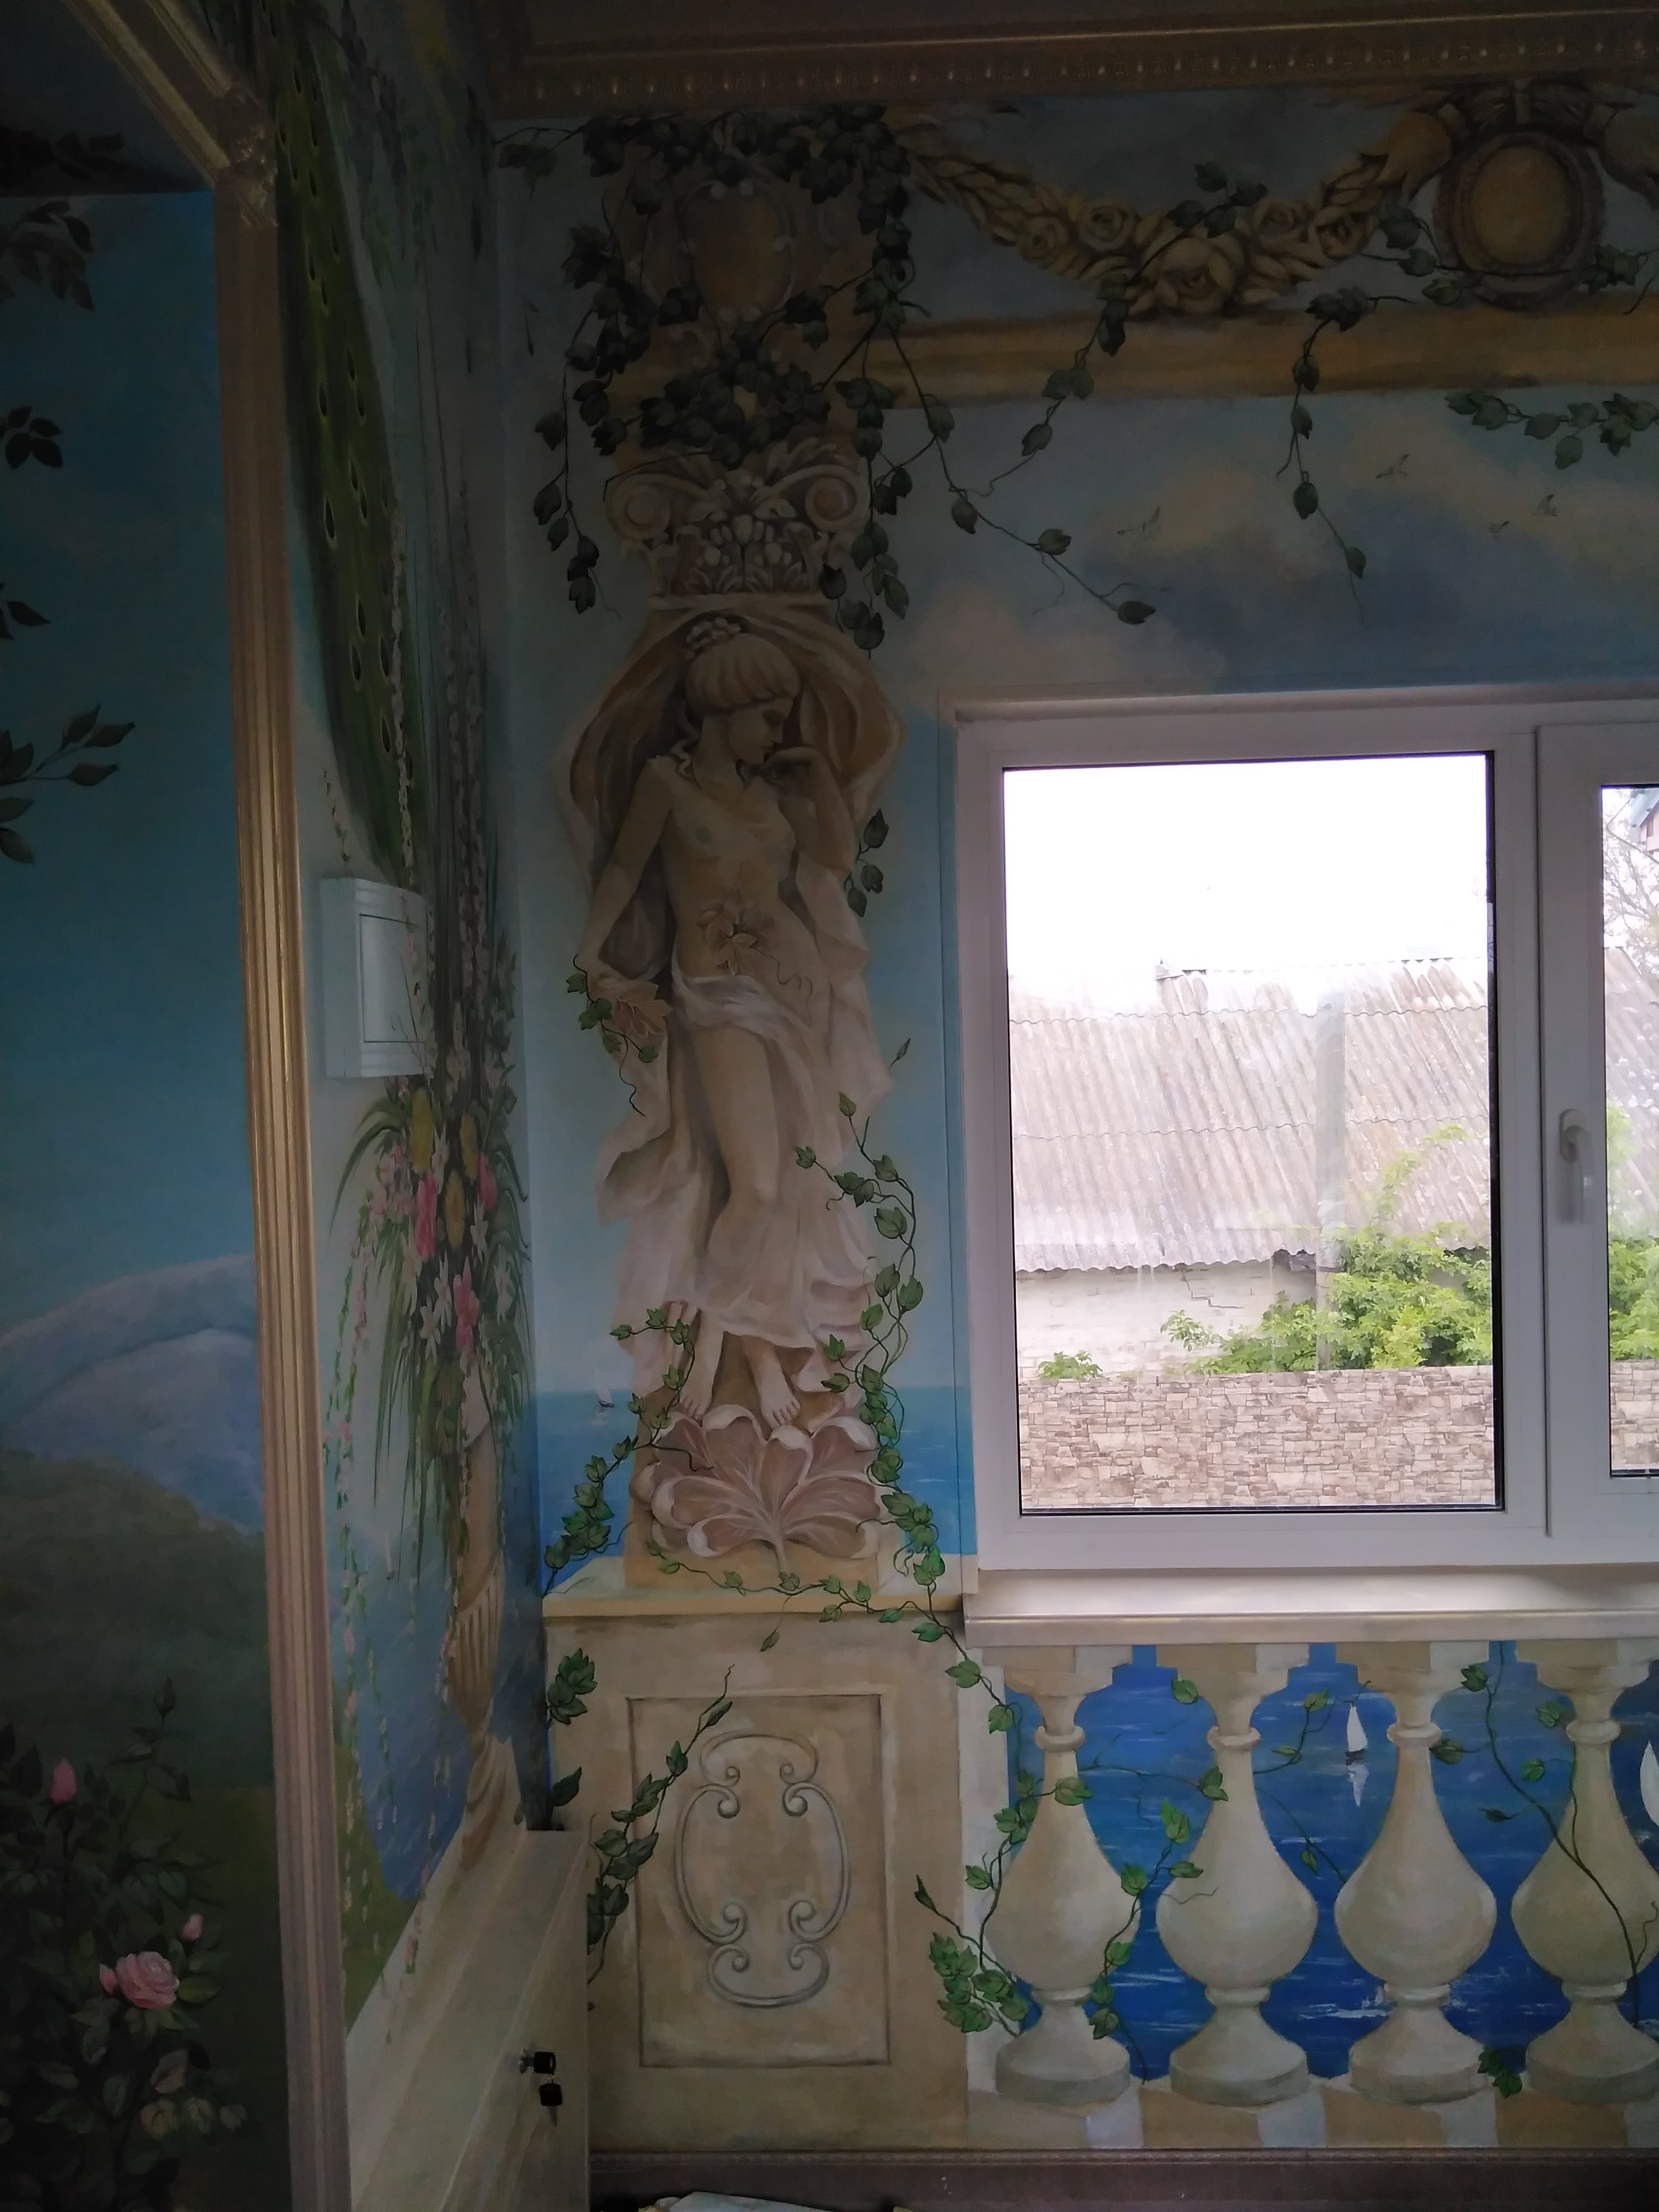 <p>Painting in the interior</p>